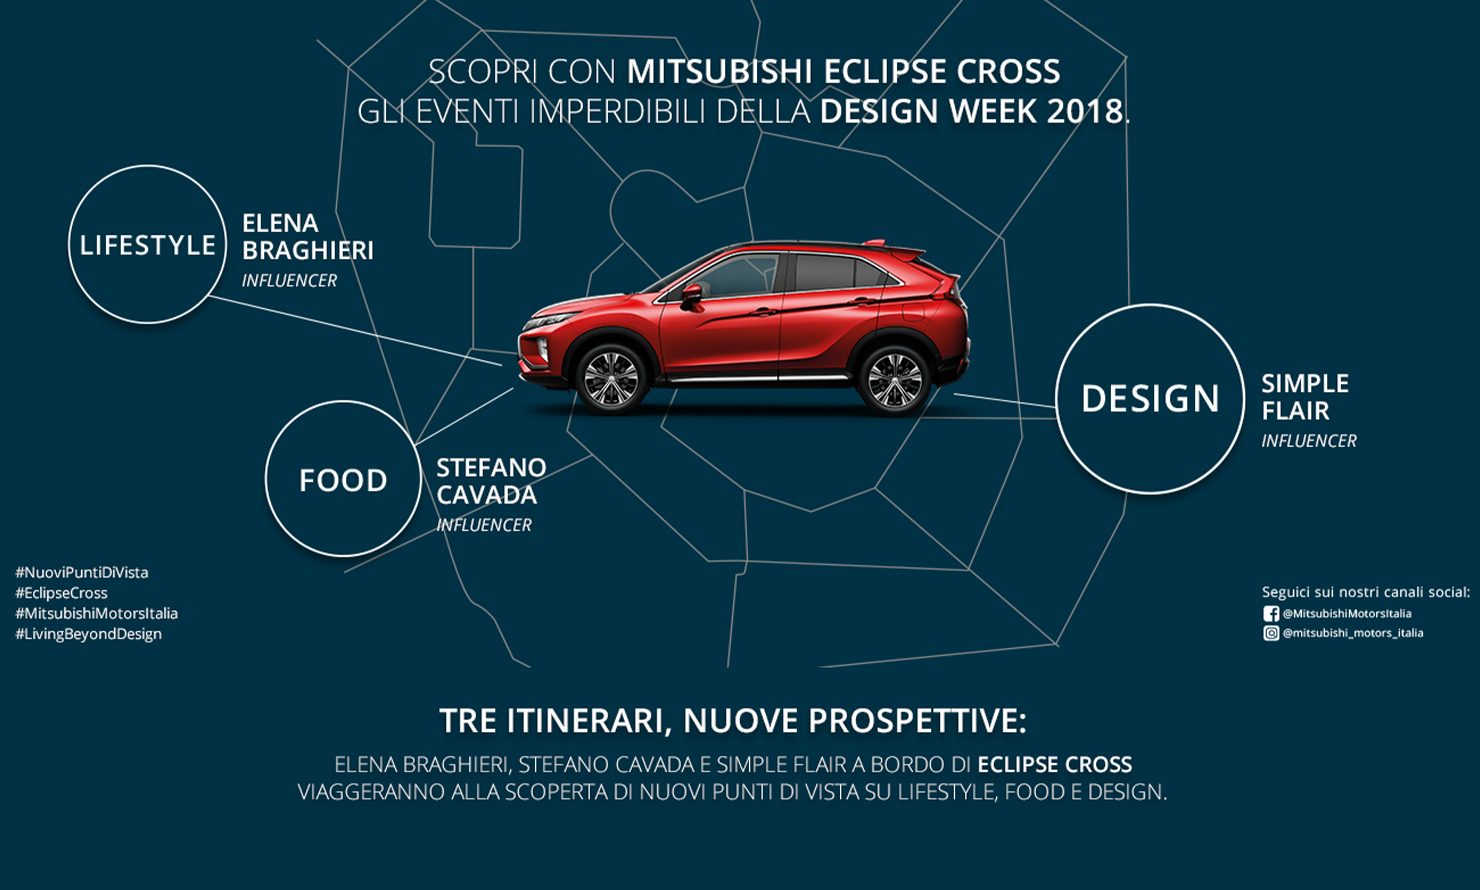 https://kubelibre.com/uploads/Slider-work-tutti-clienti/mitsubishi-eclipse-cross-design-week-2.jpg